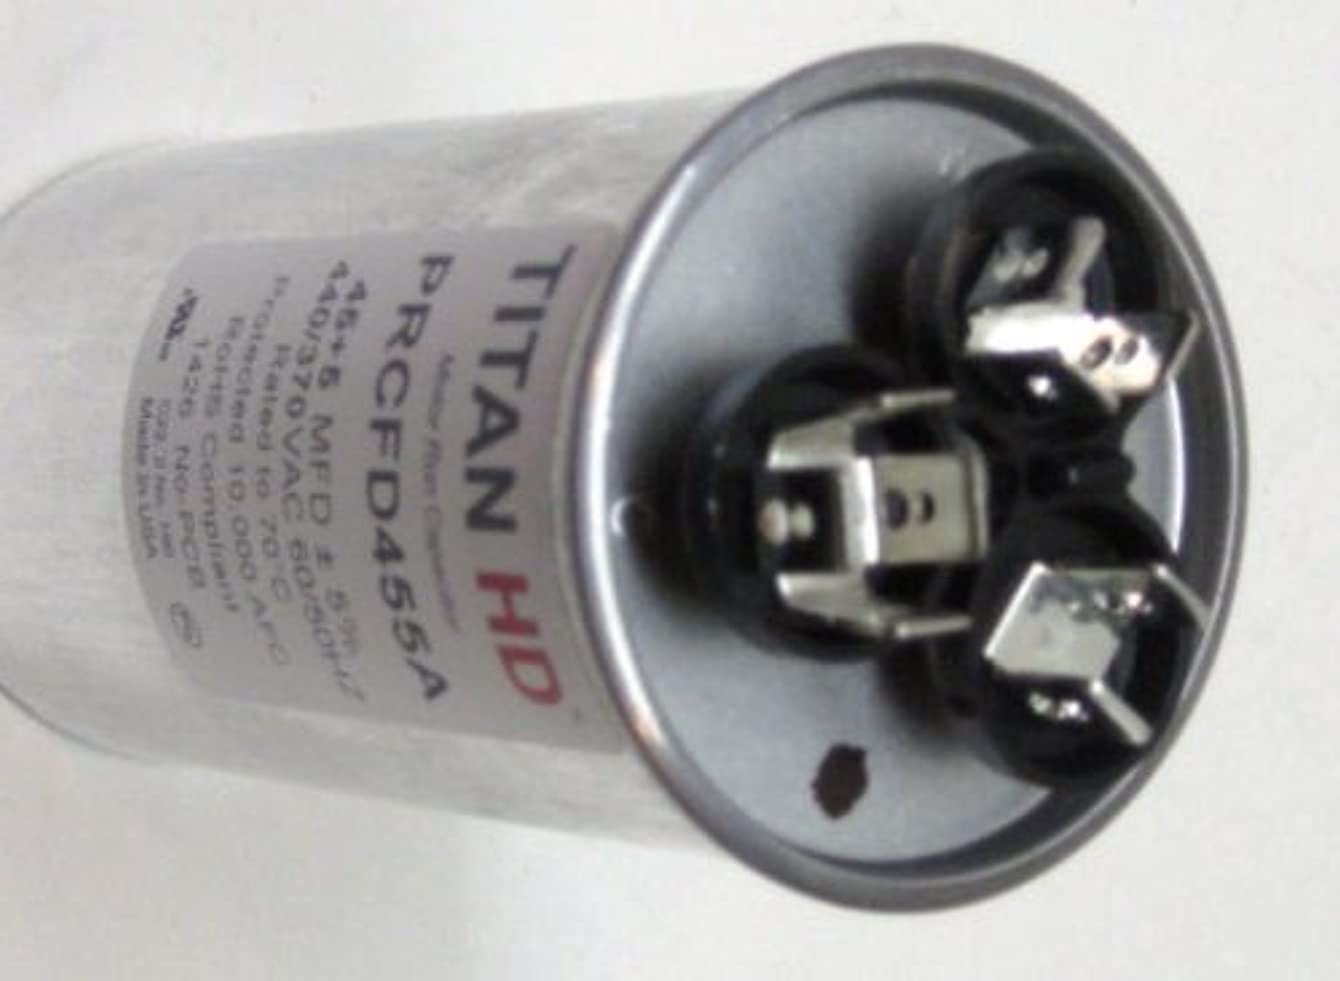 Room Air Conditioner Replacement Parts TitanHD PRCFD455A American-Made HVAC Round Motor Run Dual Capacitor. 45/5